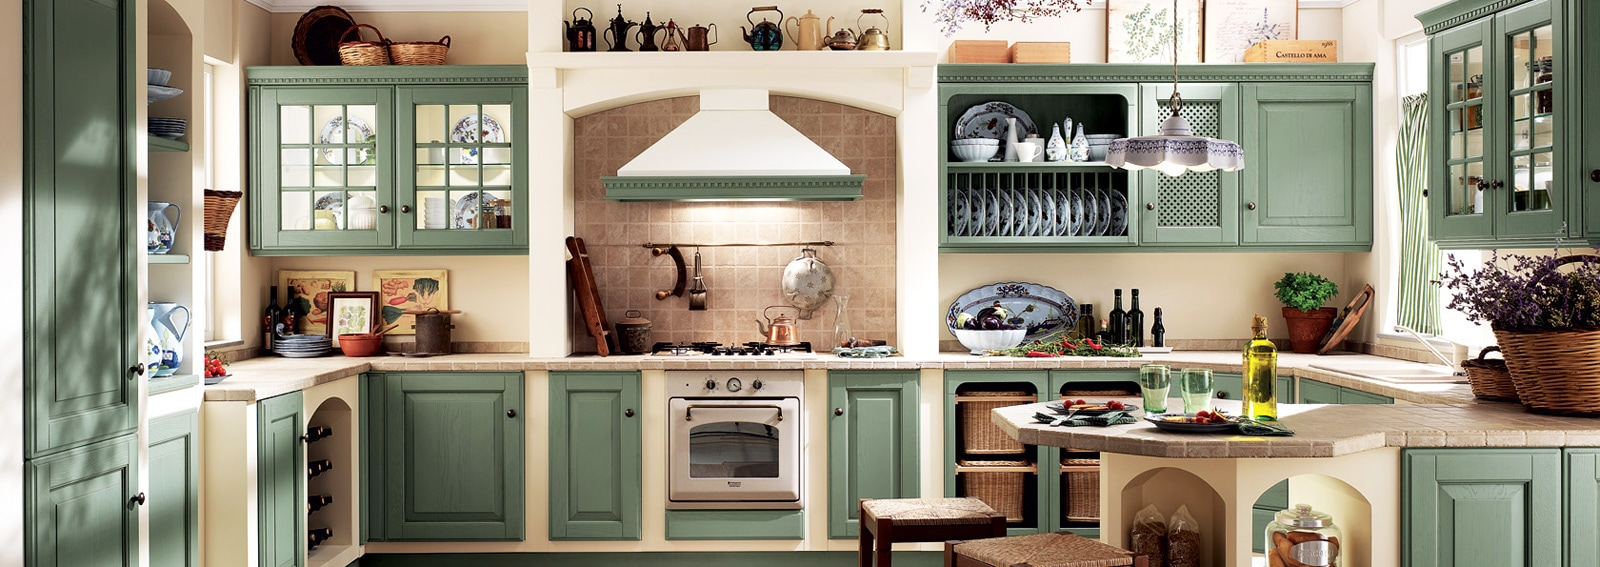 Cucine in muratura: classiche, rustiche e country - Grazia.it